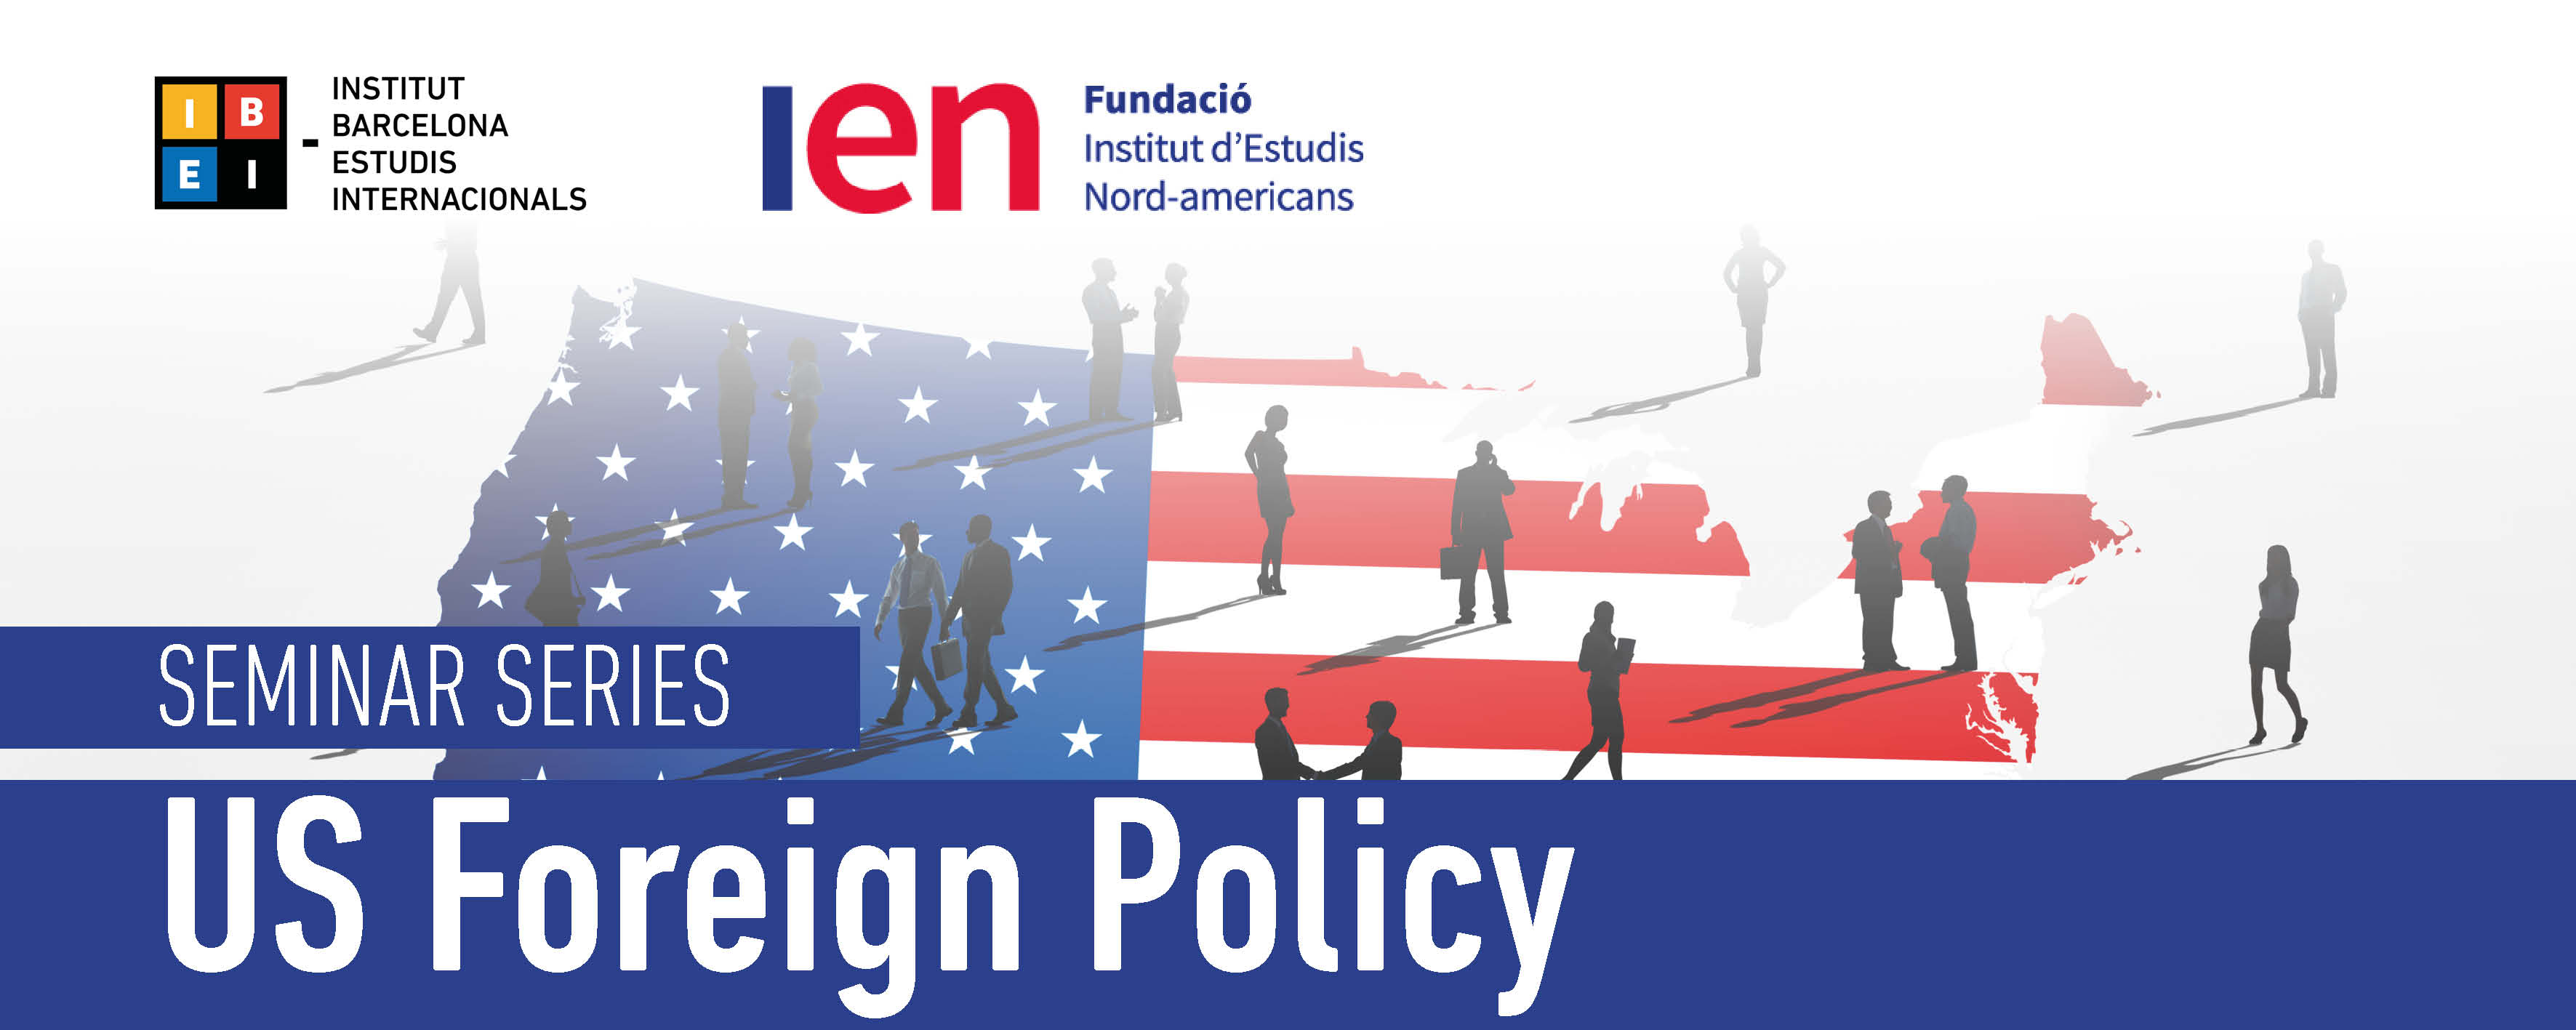 NEW Seminar Series on the US Foreign Policy_CAPÇALERA